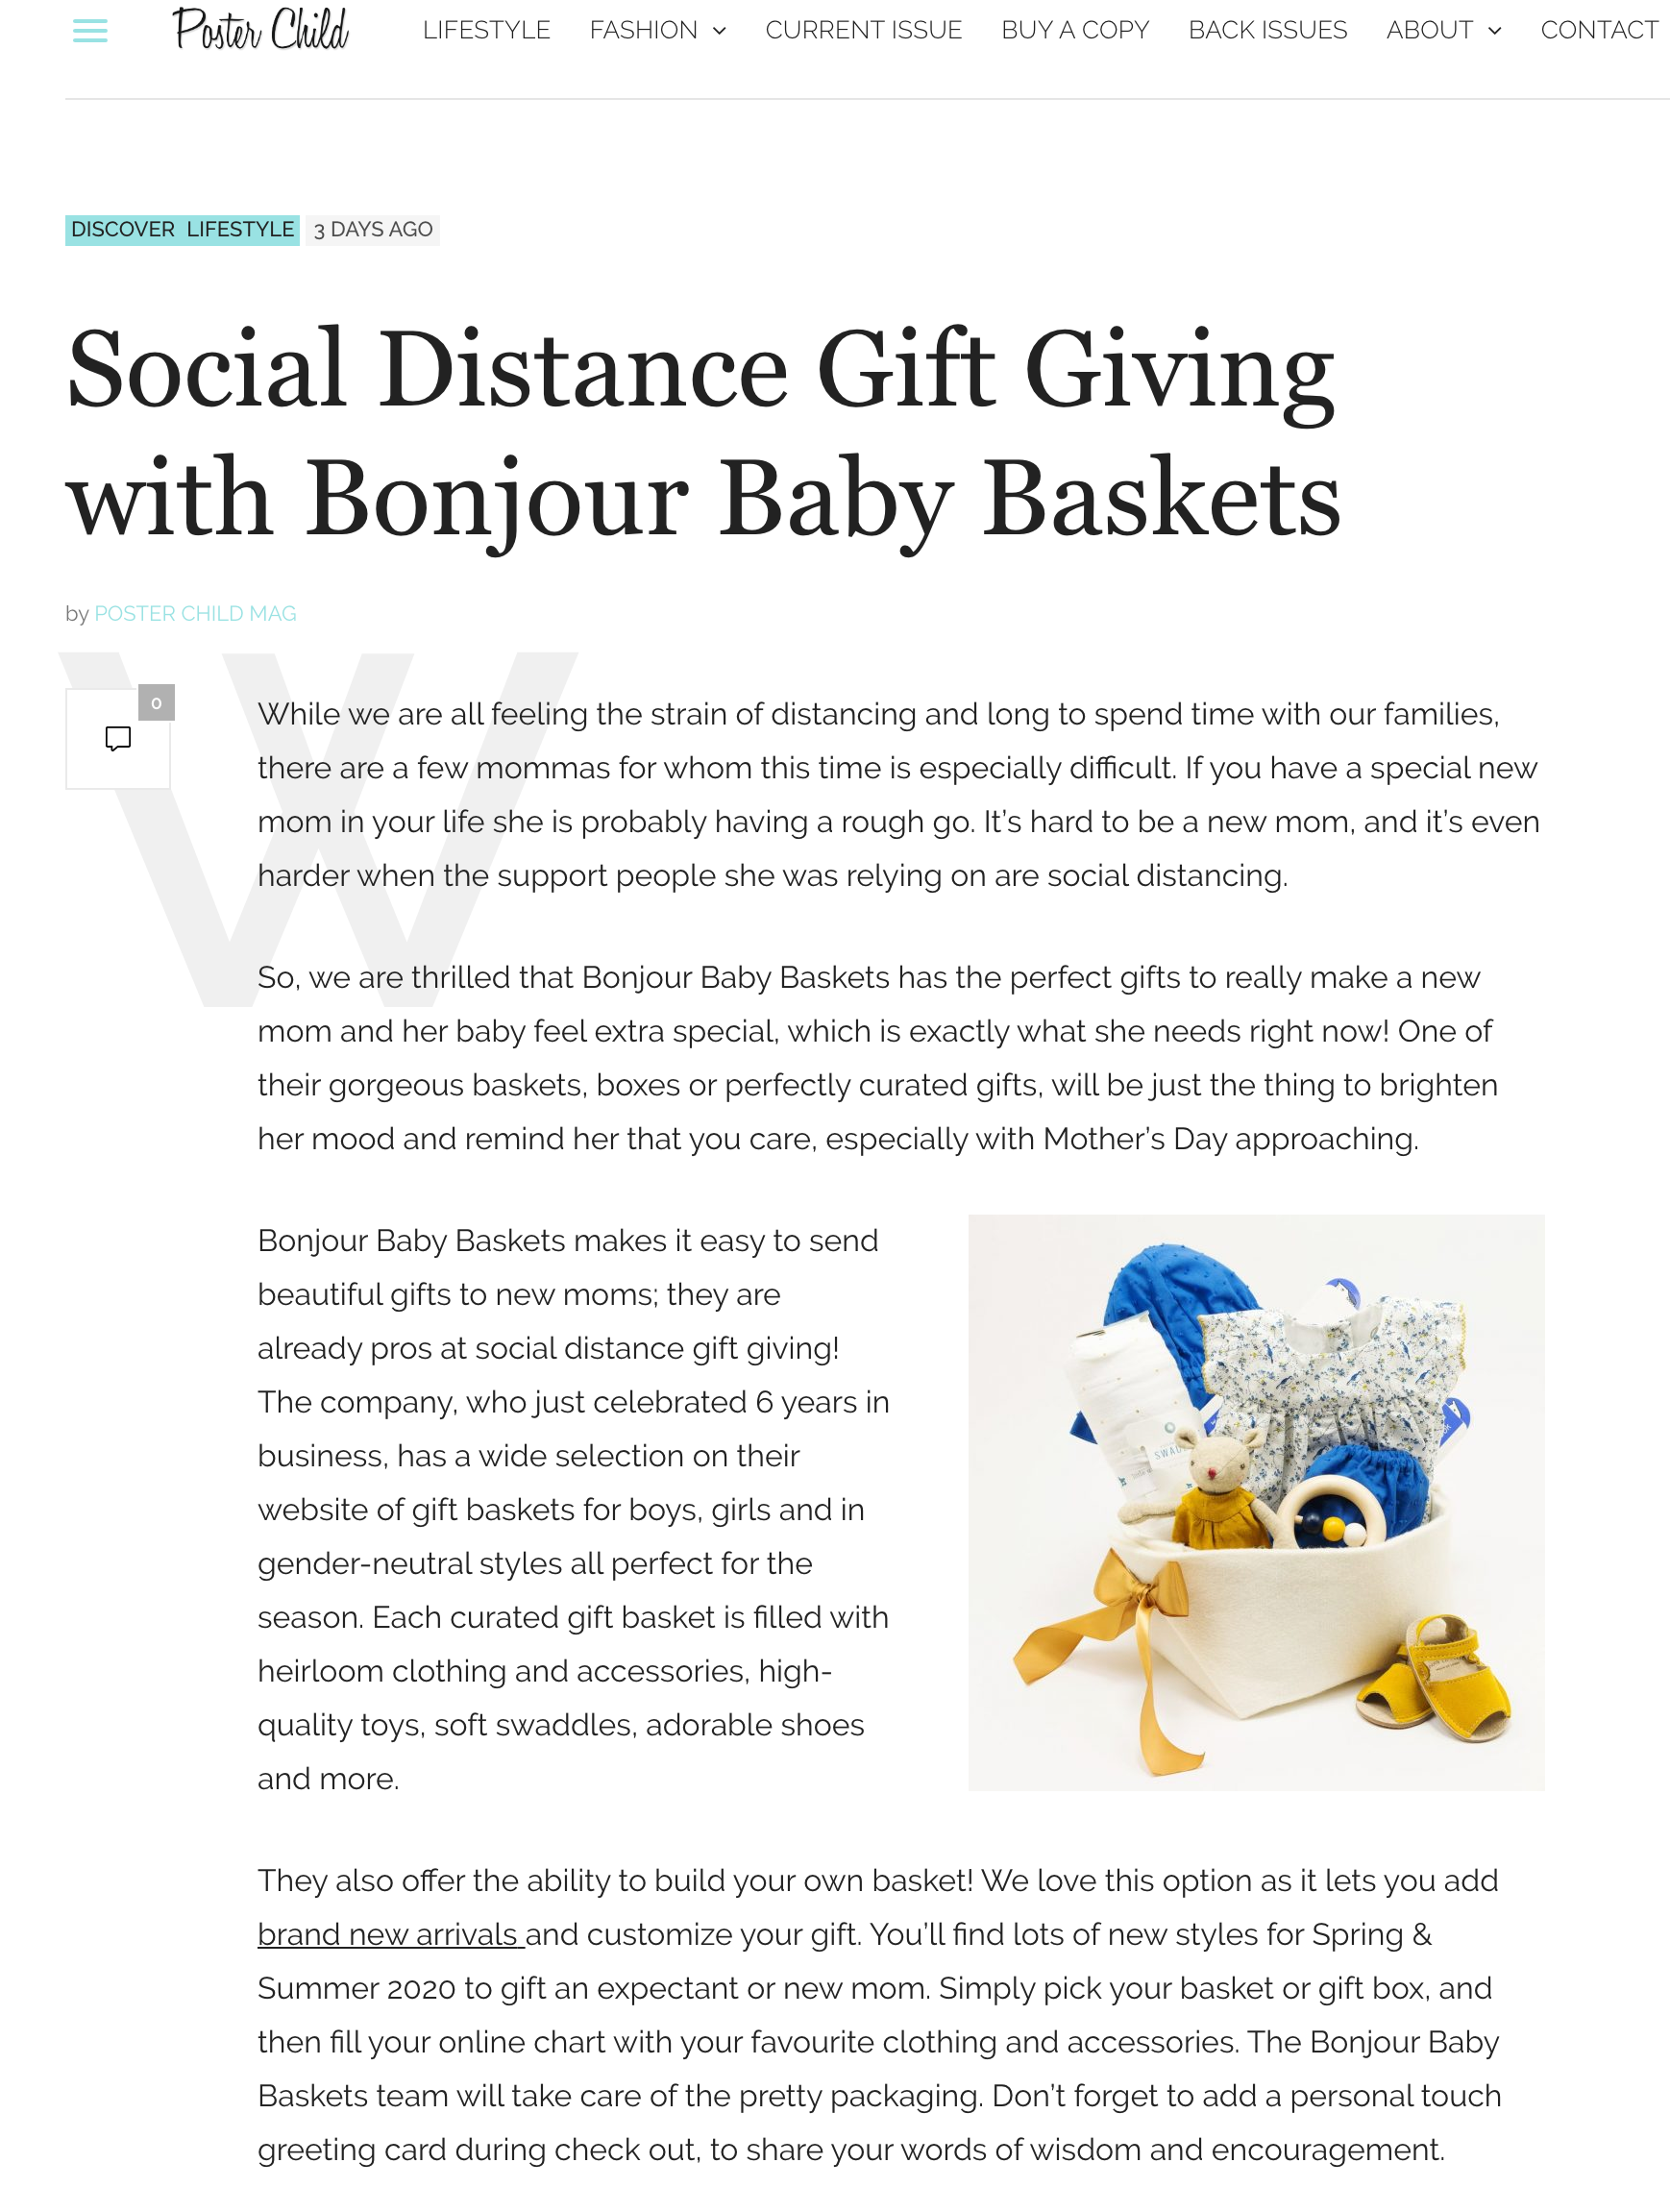 Social Distance Gift Giving with Bonjour Baby Baskets